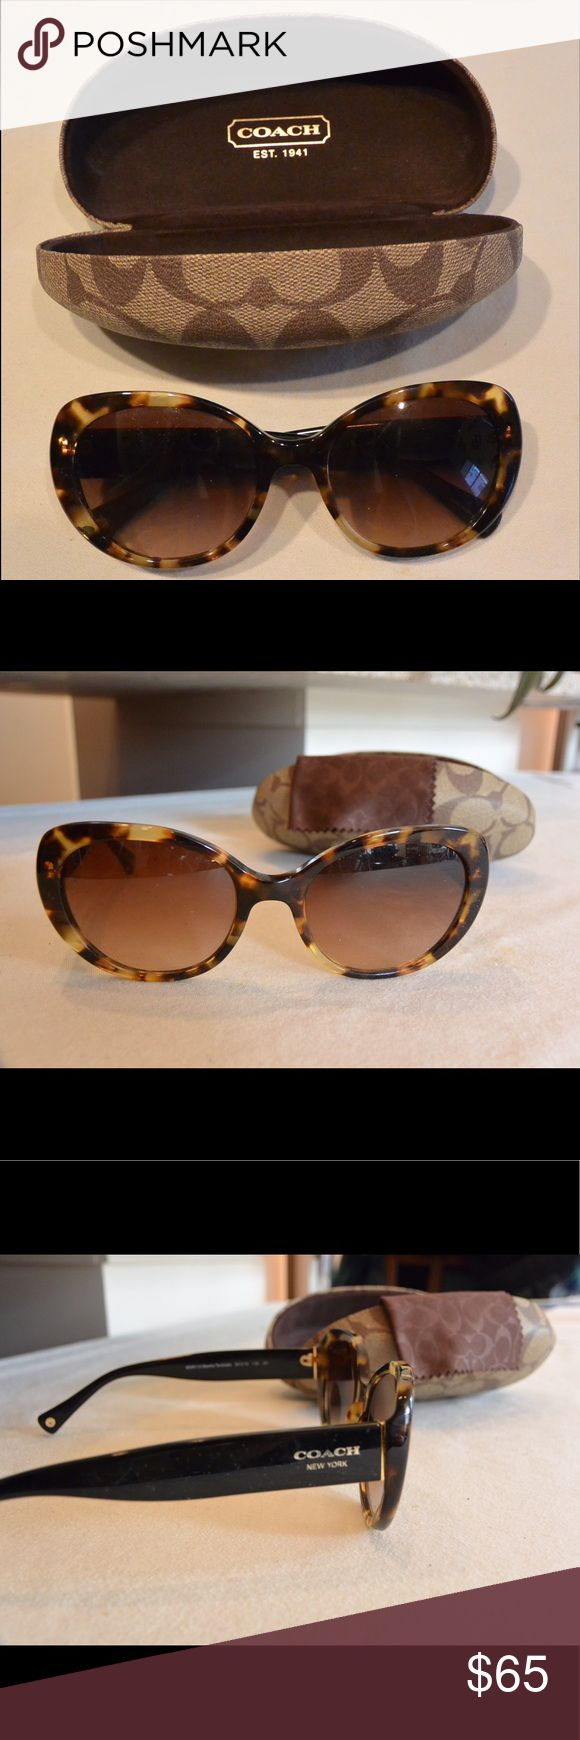 Coach Tortoise Shell Sunglasses Coach sunglasses with tortoise shell frames, only worn a few times - in great condition. Comes with case. Coach Accessories Sunglasses